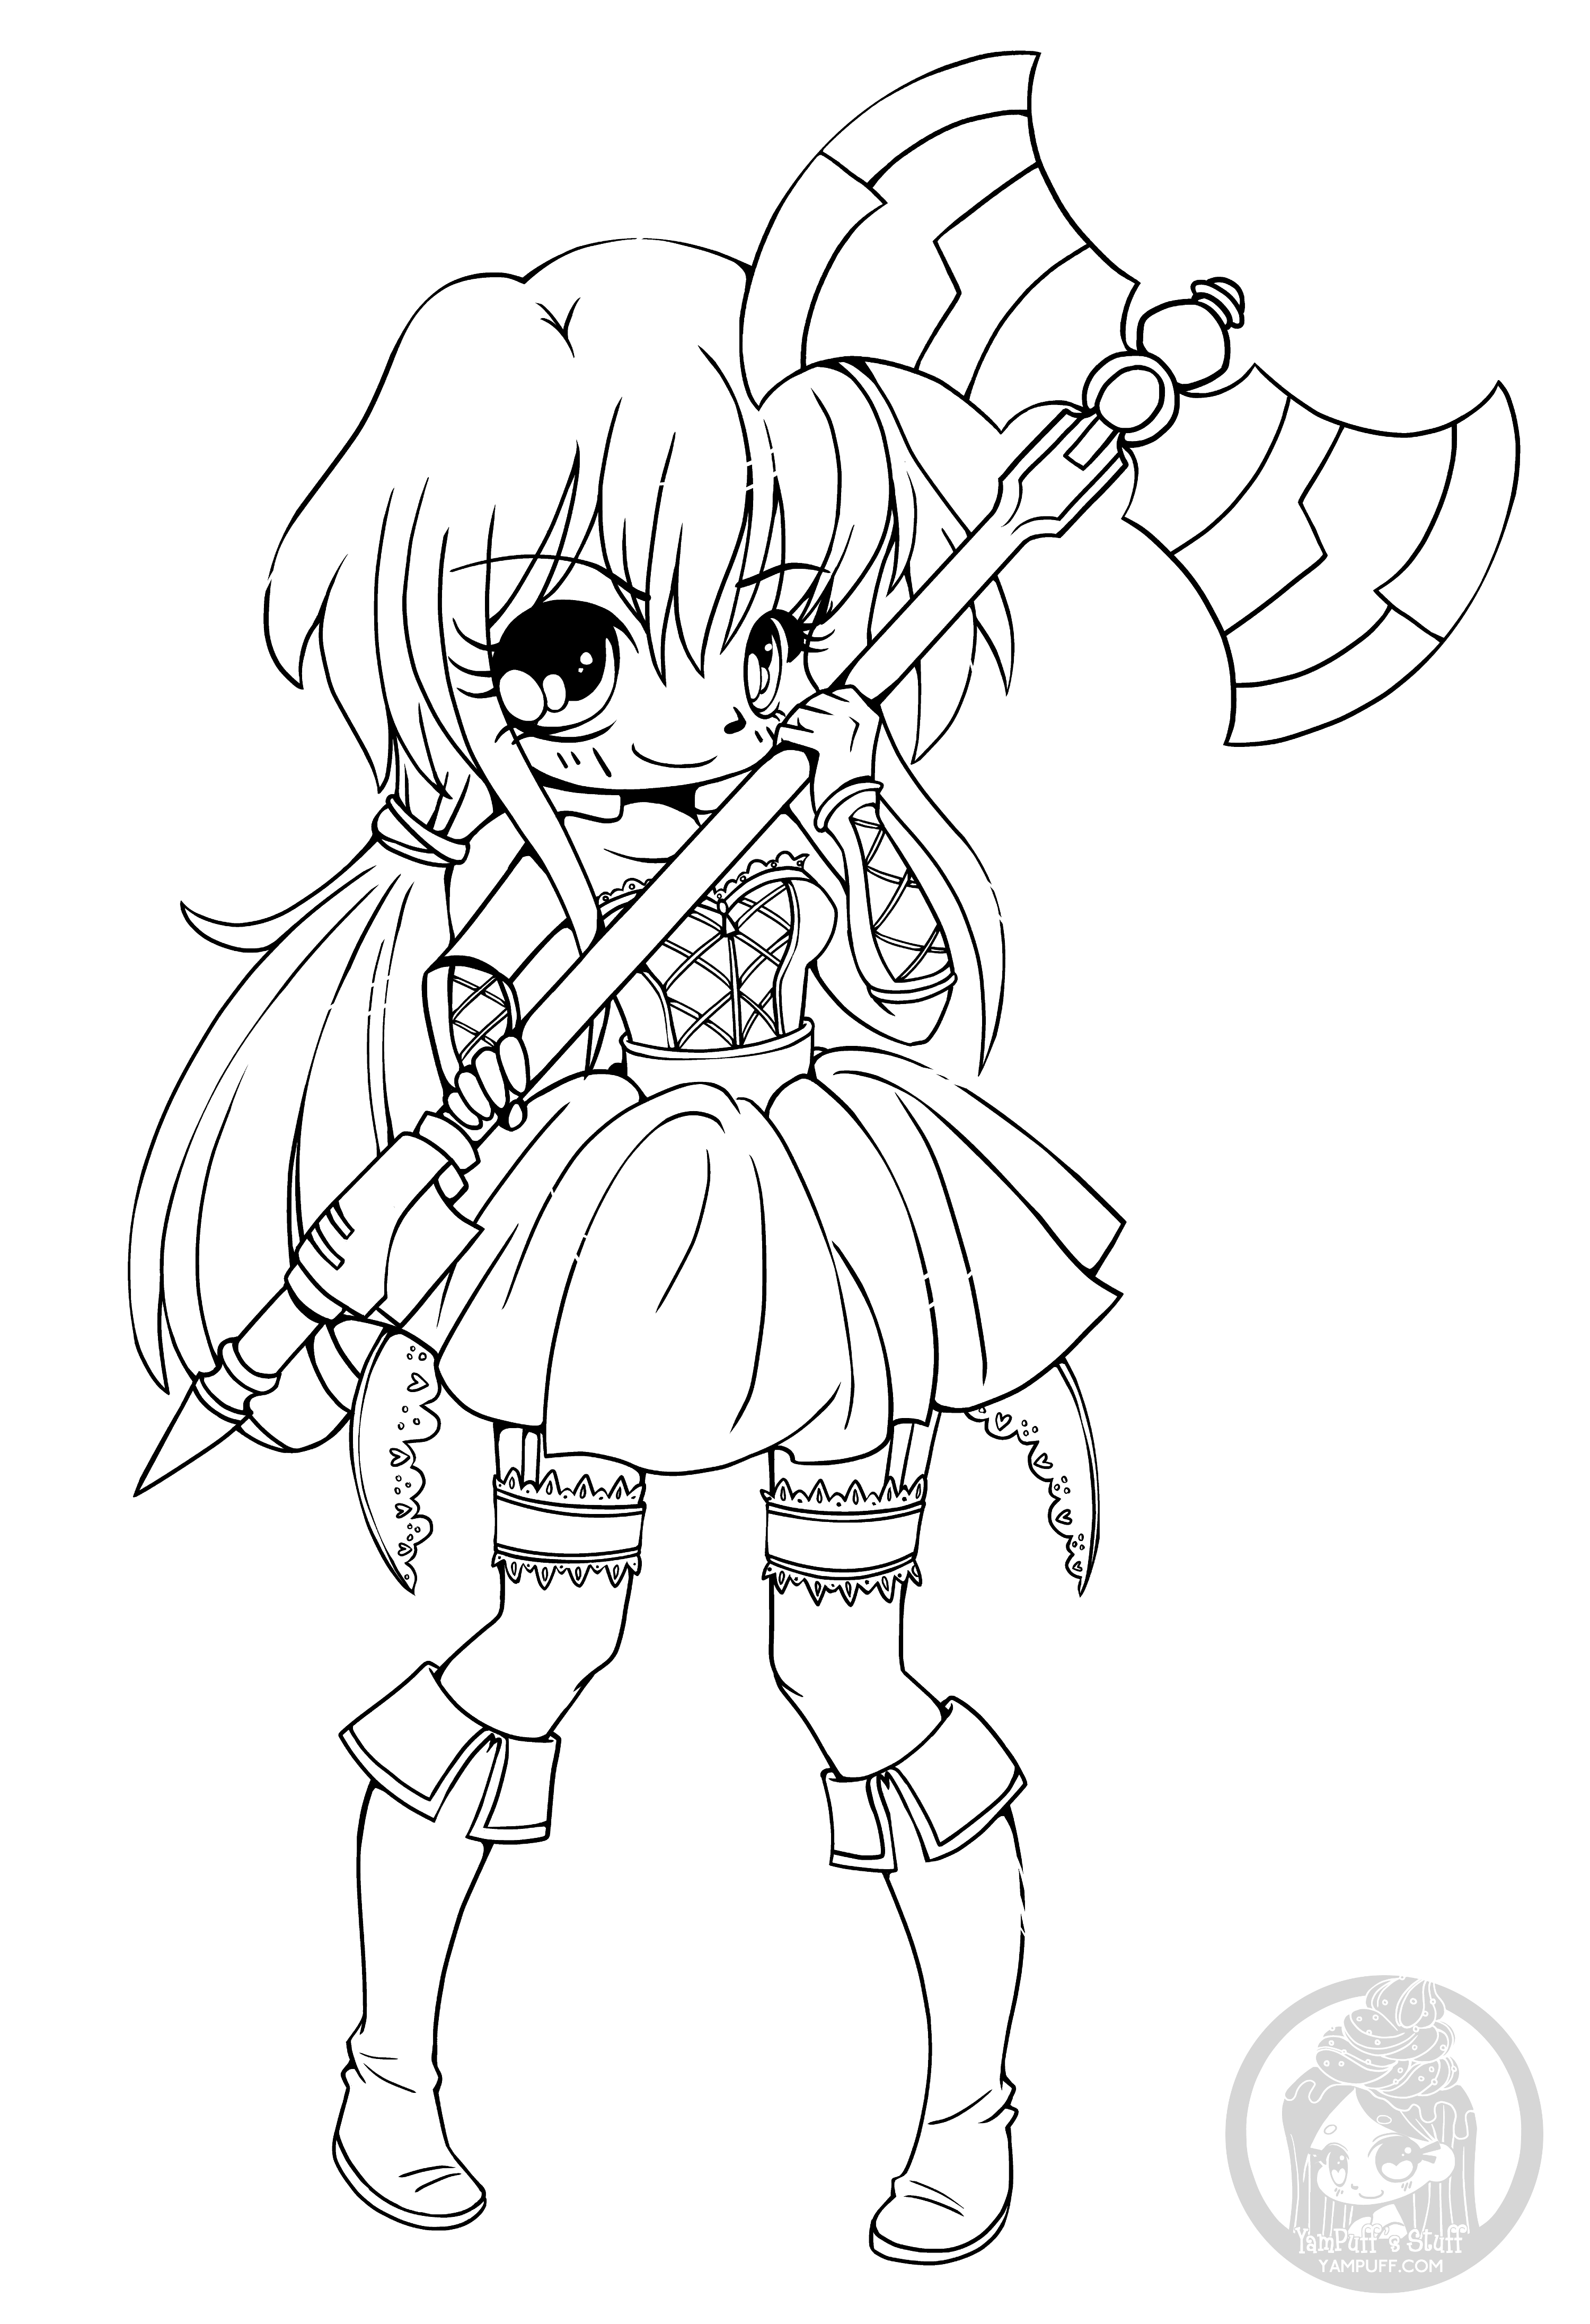 Chibis free chibi coloring pages yampuff 39 s stuff for Chibi coloring pages